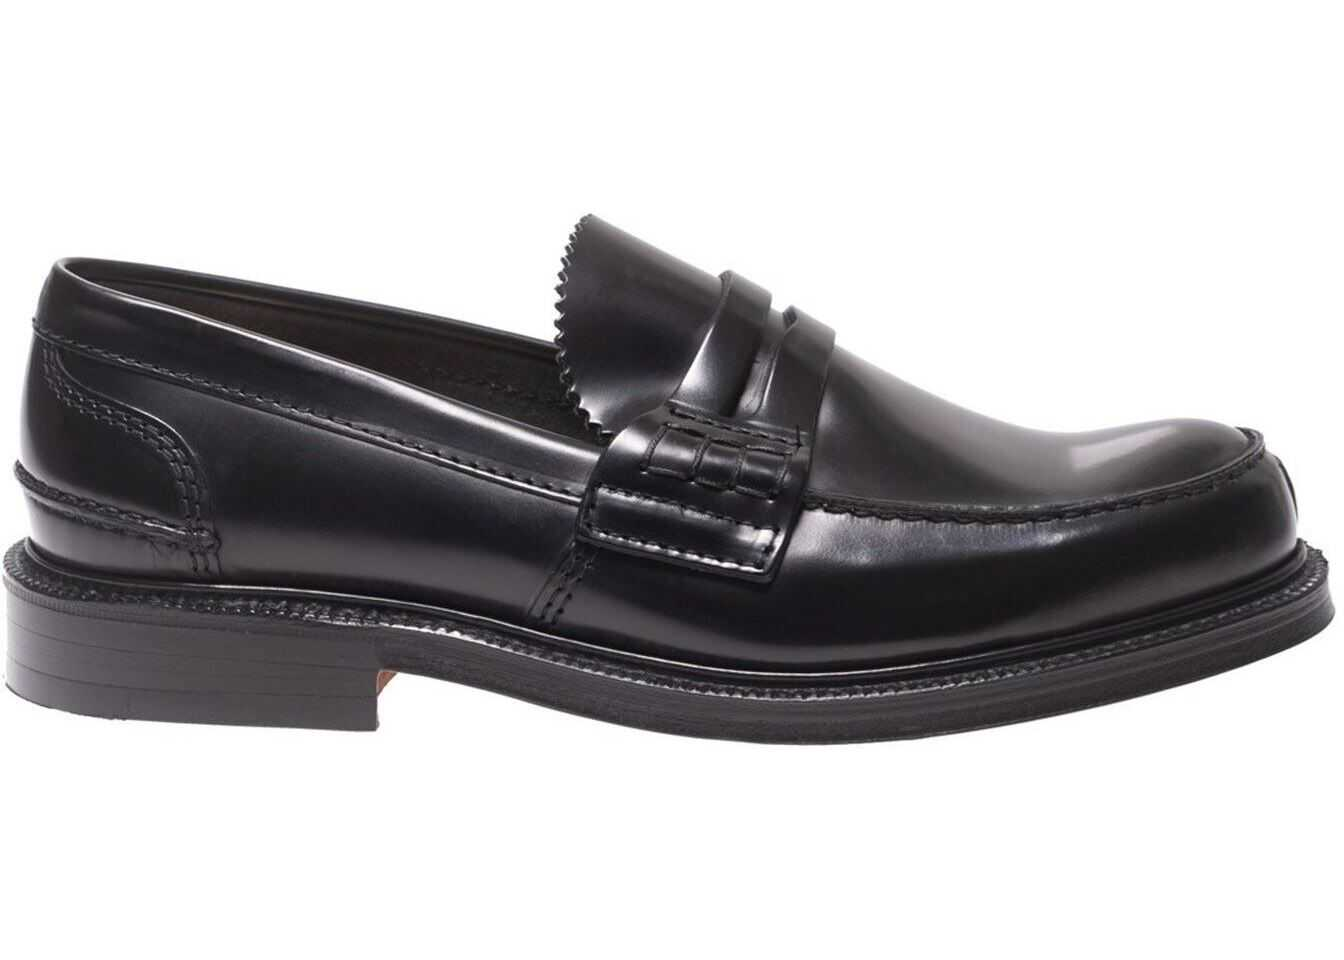 Willenhall Black Bookbinder Loafers